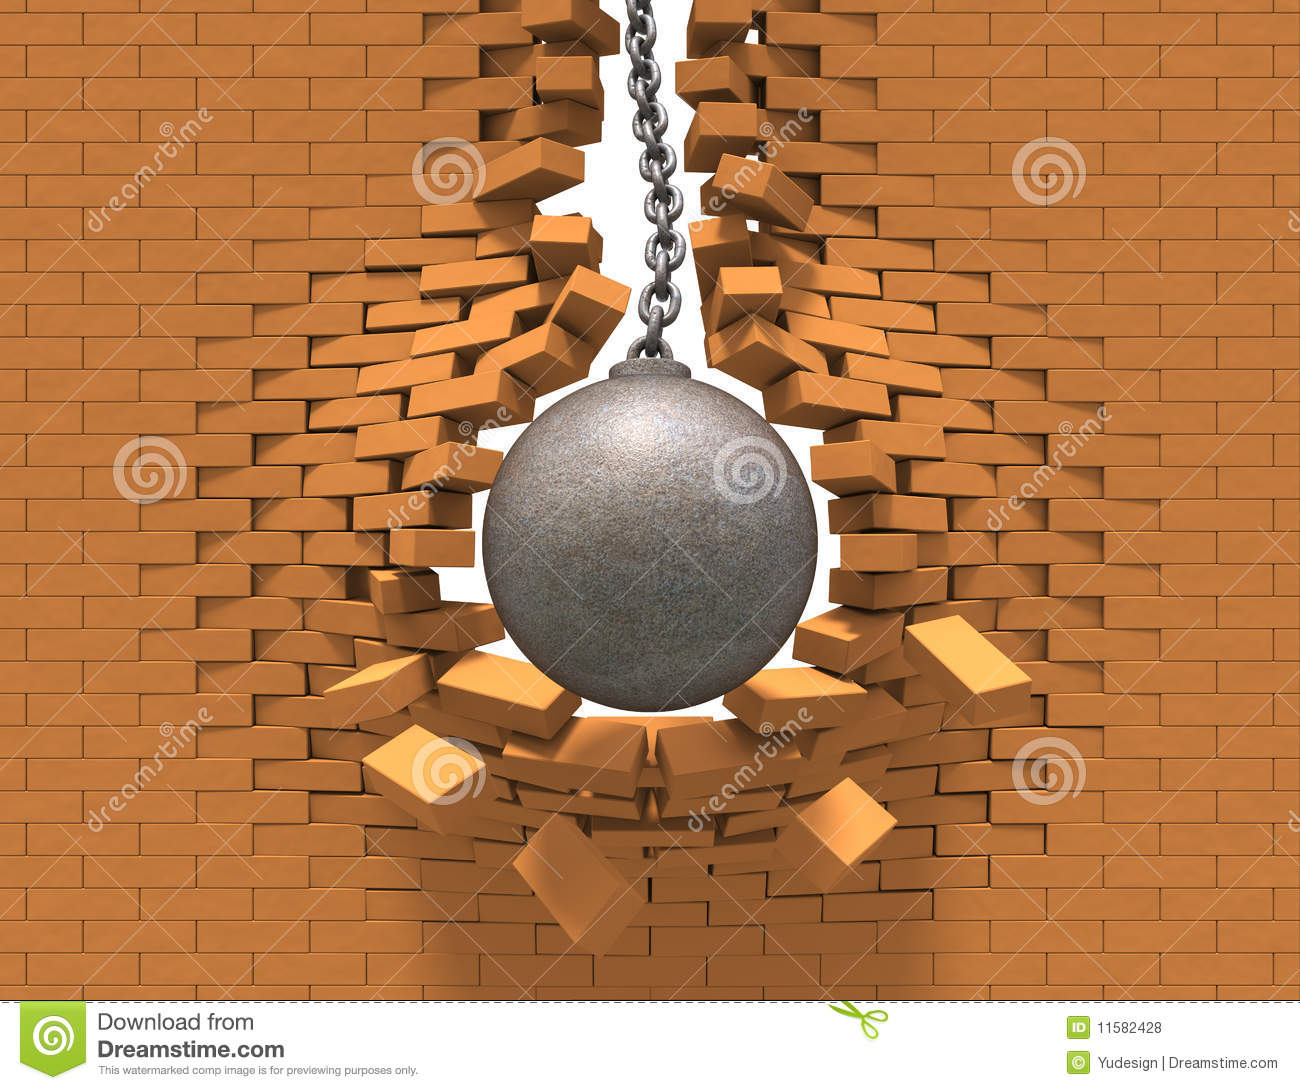 Wrecking Ball Demolition : Wrecking ball royalty free stock photos image